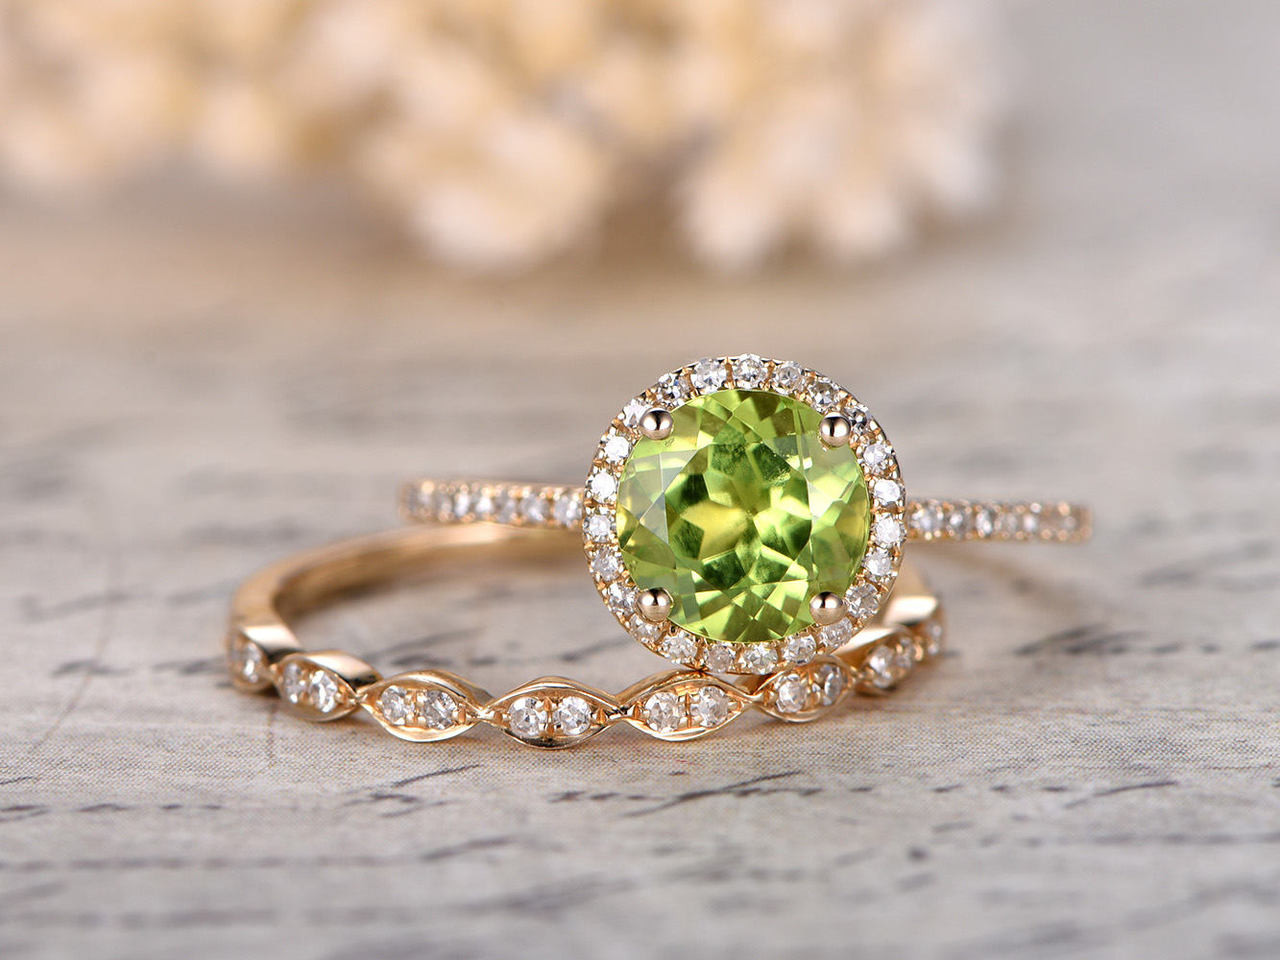 set pin rings wedding jewelry ring sterling botanical band peridot nature engagement flower silver bands